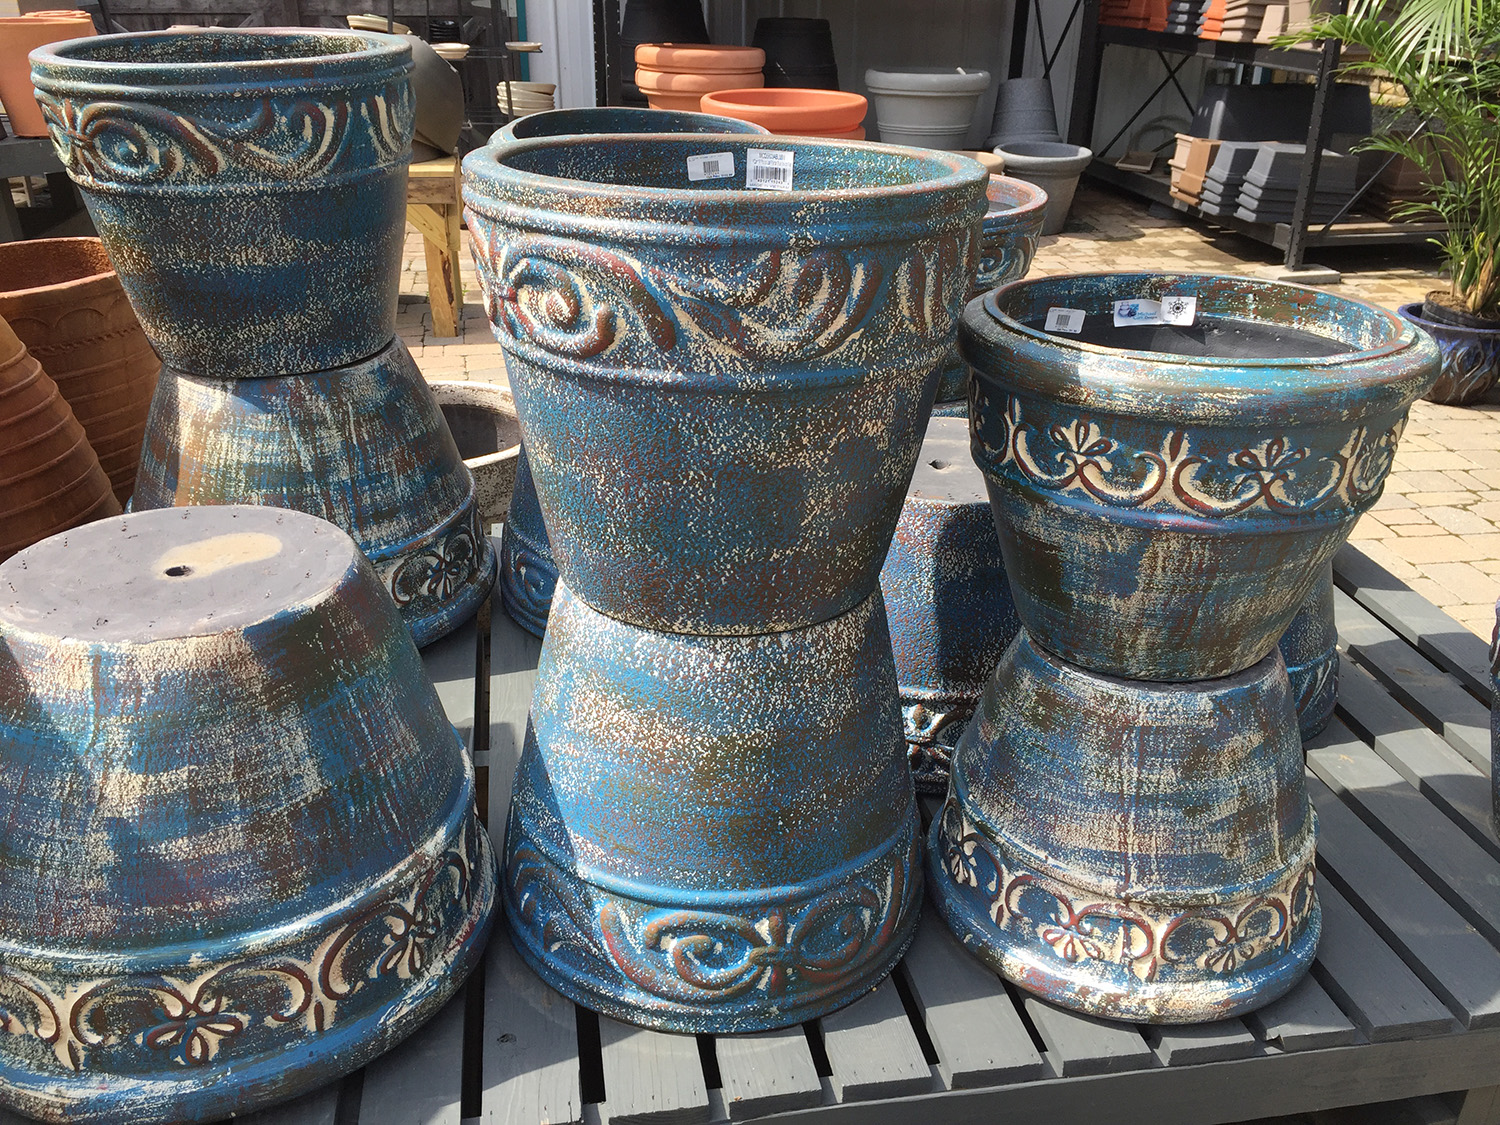 Outdoor Planters and Pottery for Sale at Patuxent Nursery